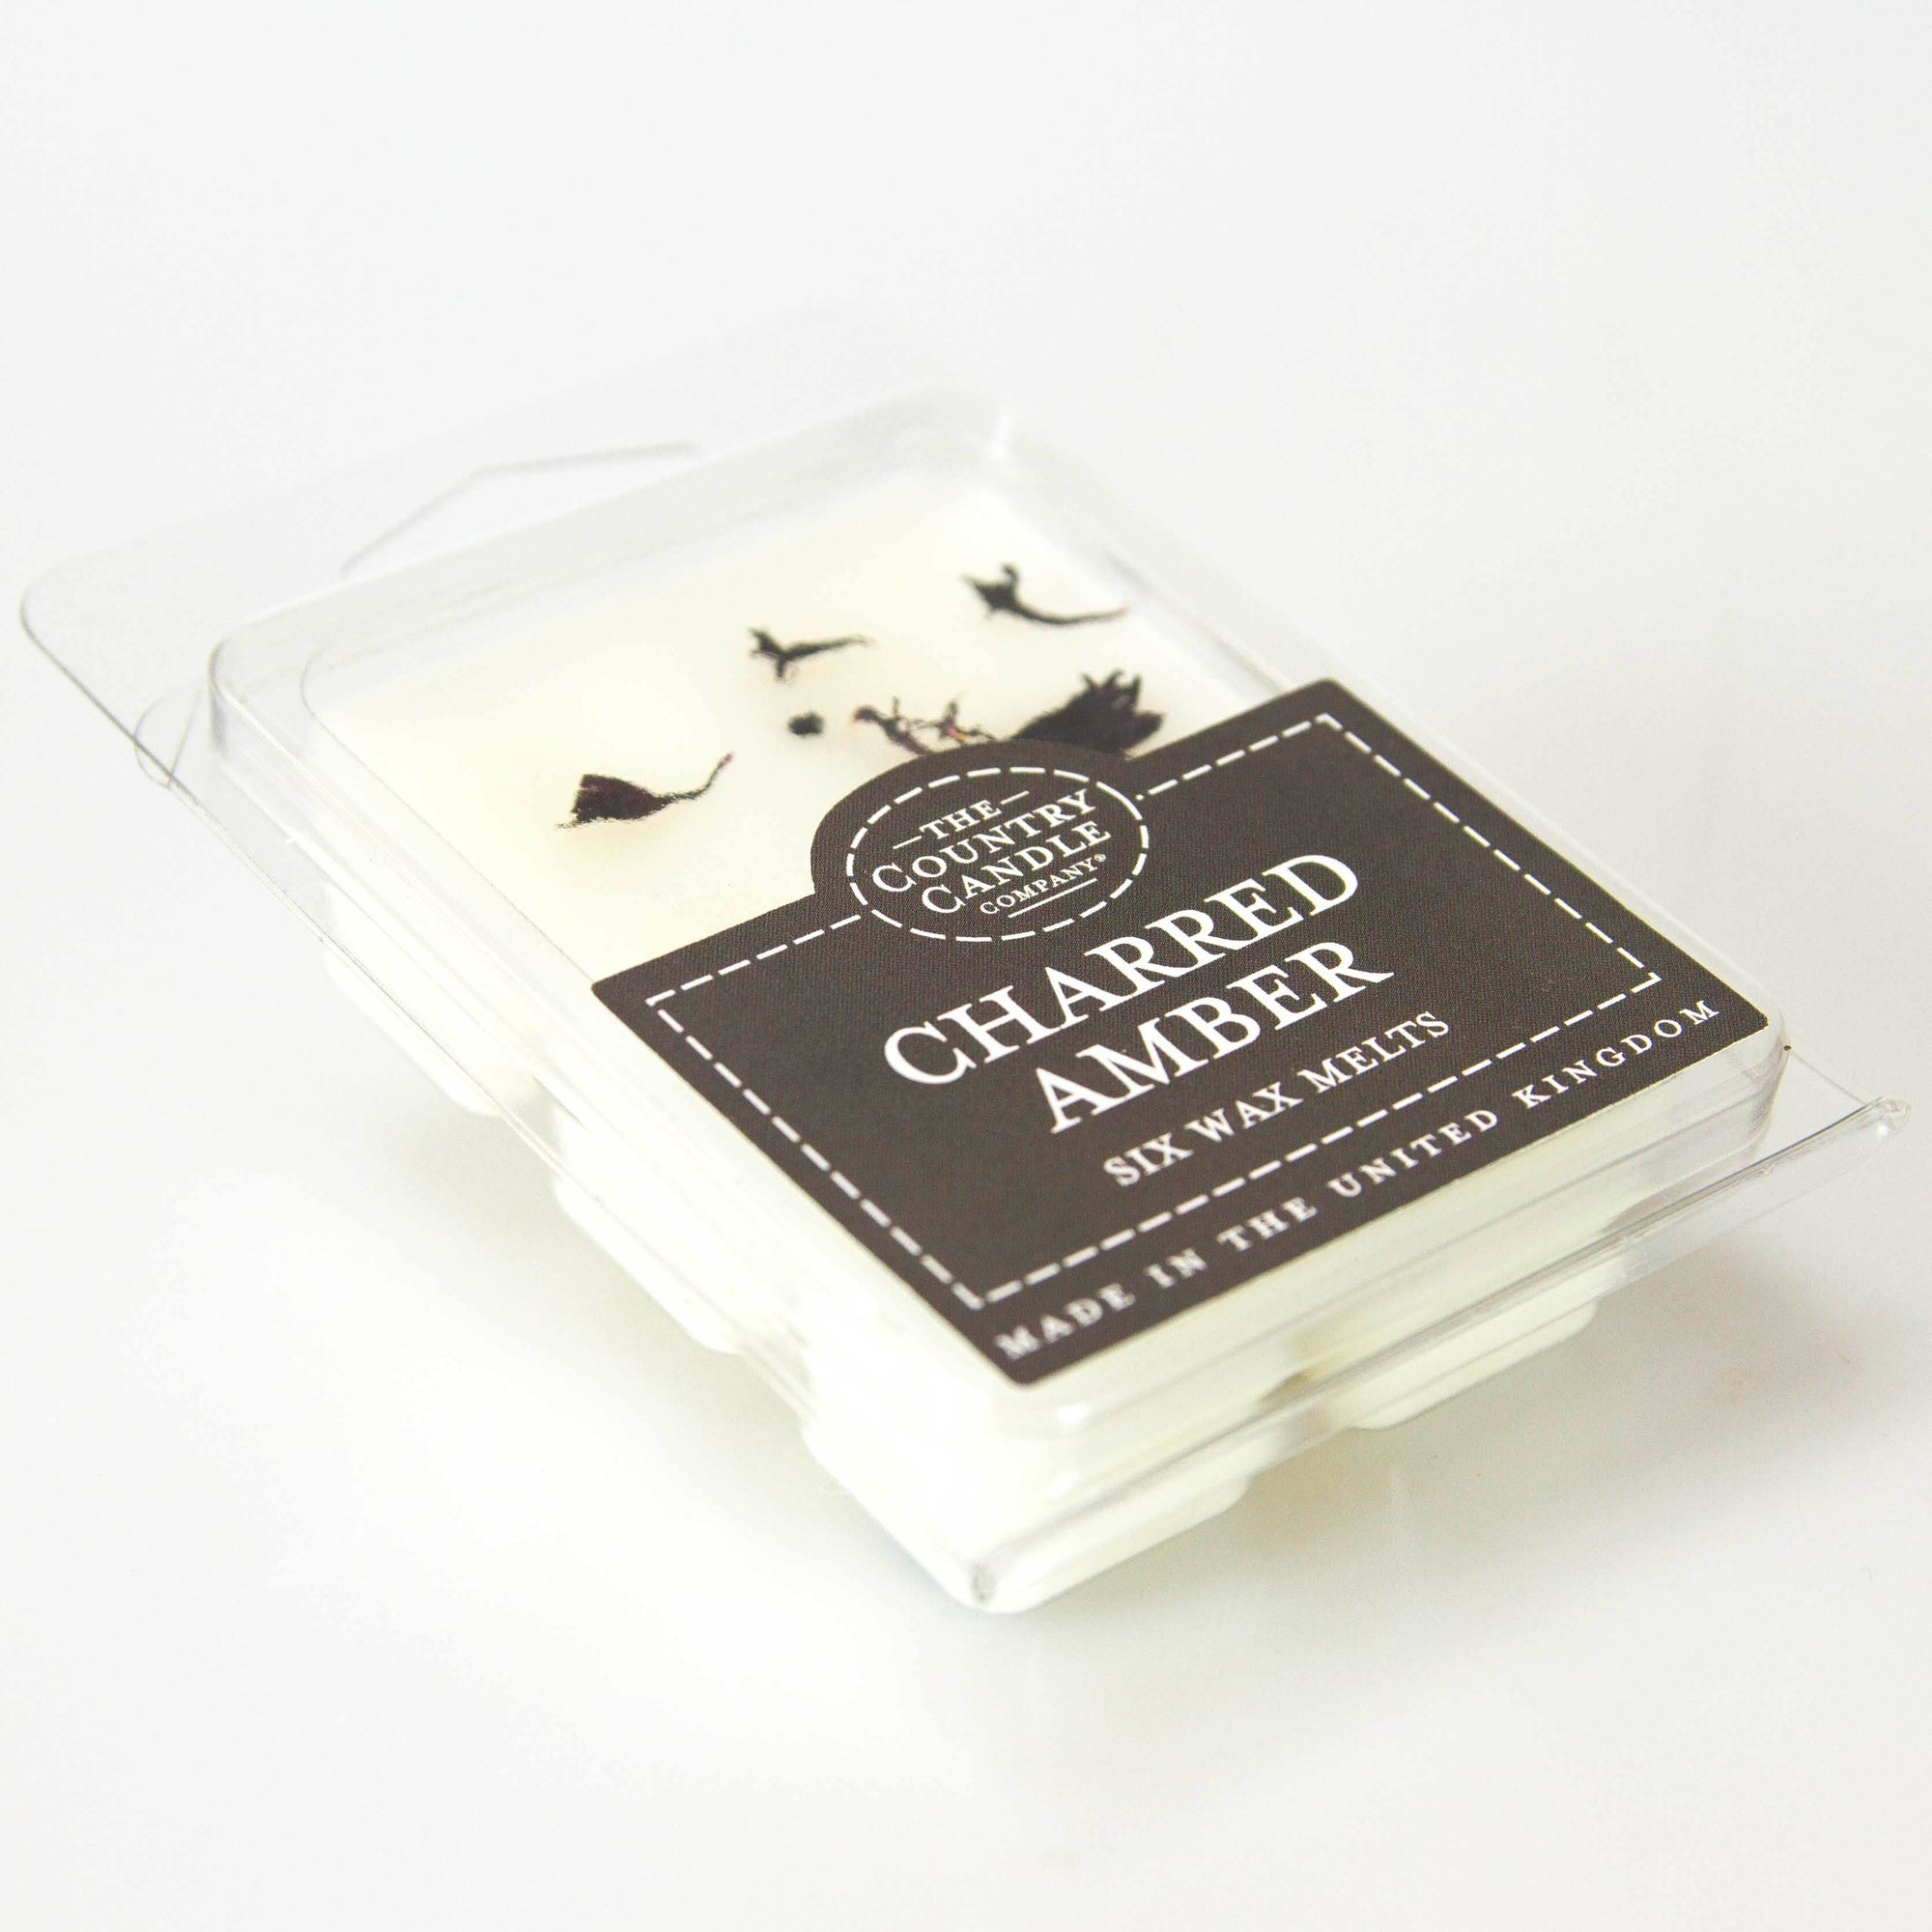 The Country Candle Co. Six Charred Amber Wax Melts